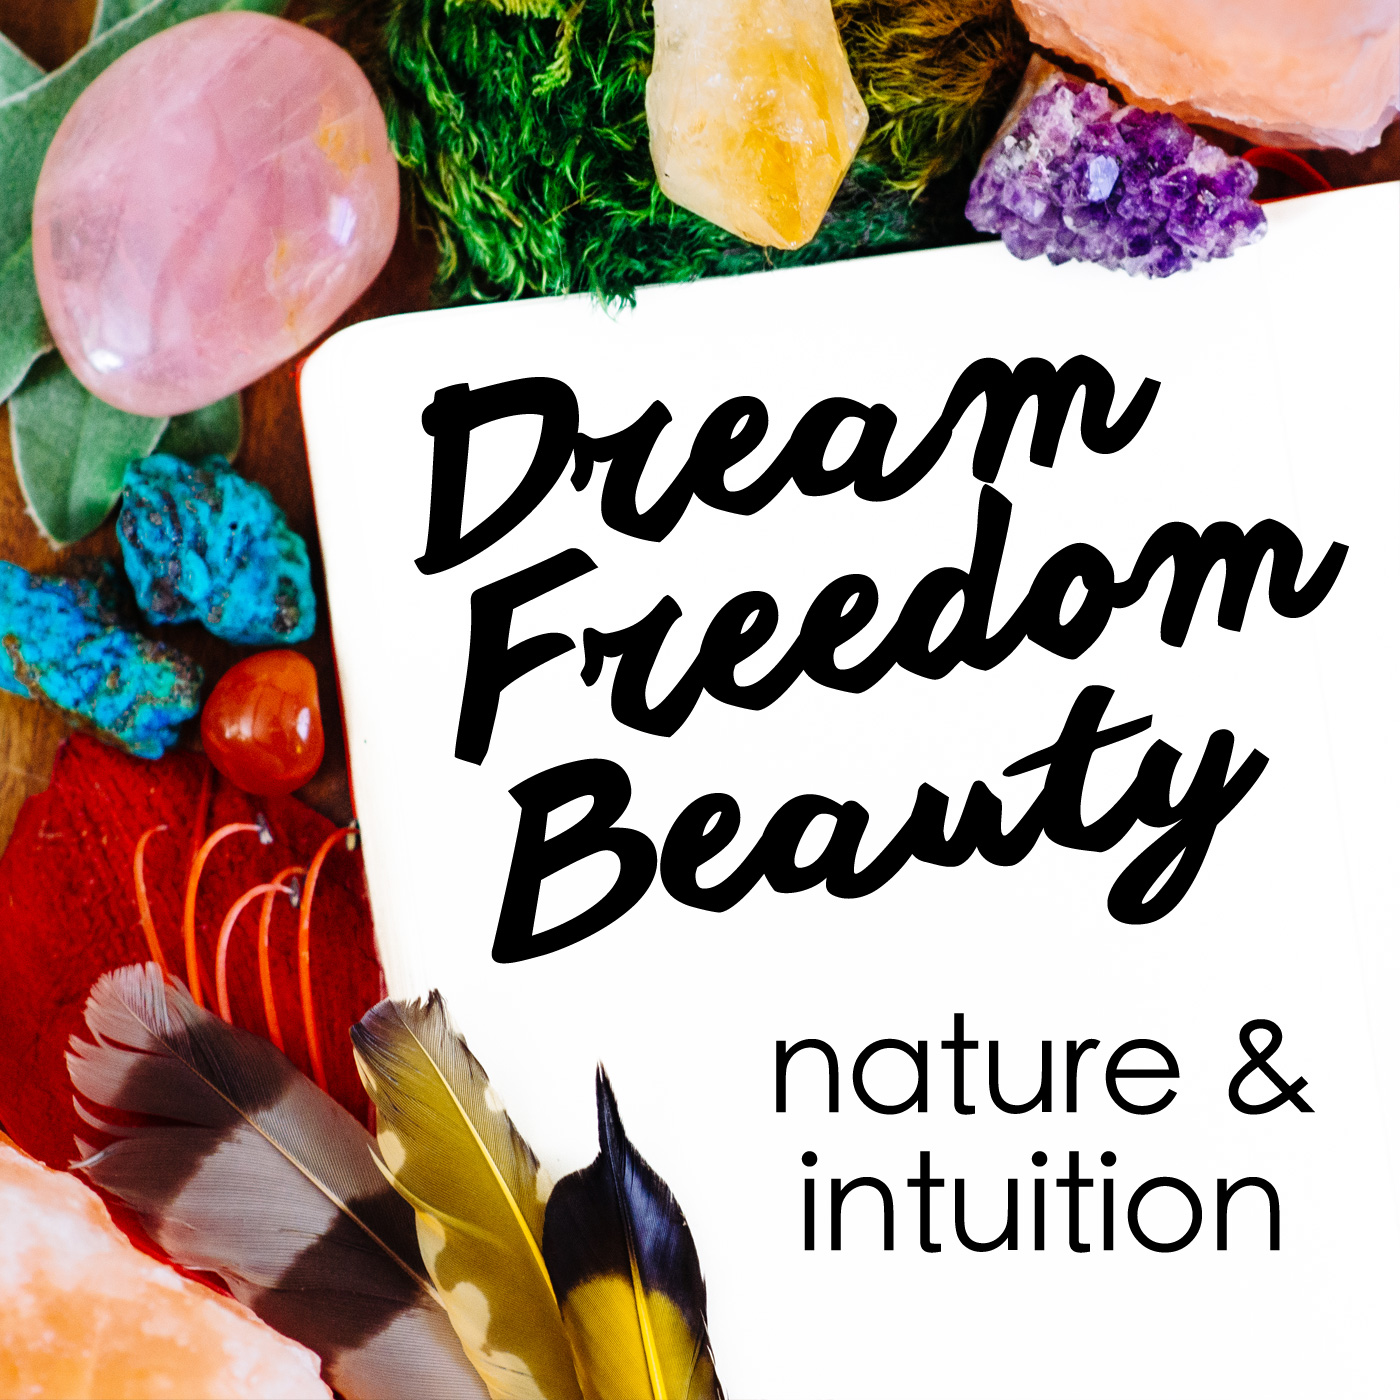 Dream Freedom Beauty: Conscious Living Guided by Nature & Spirit